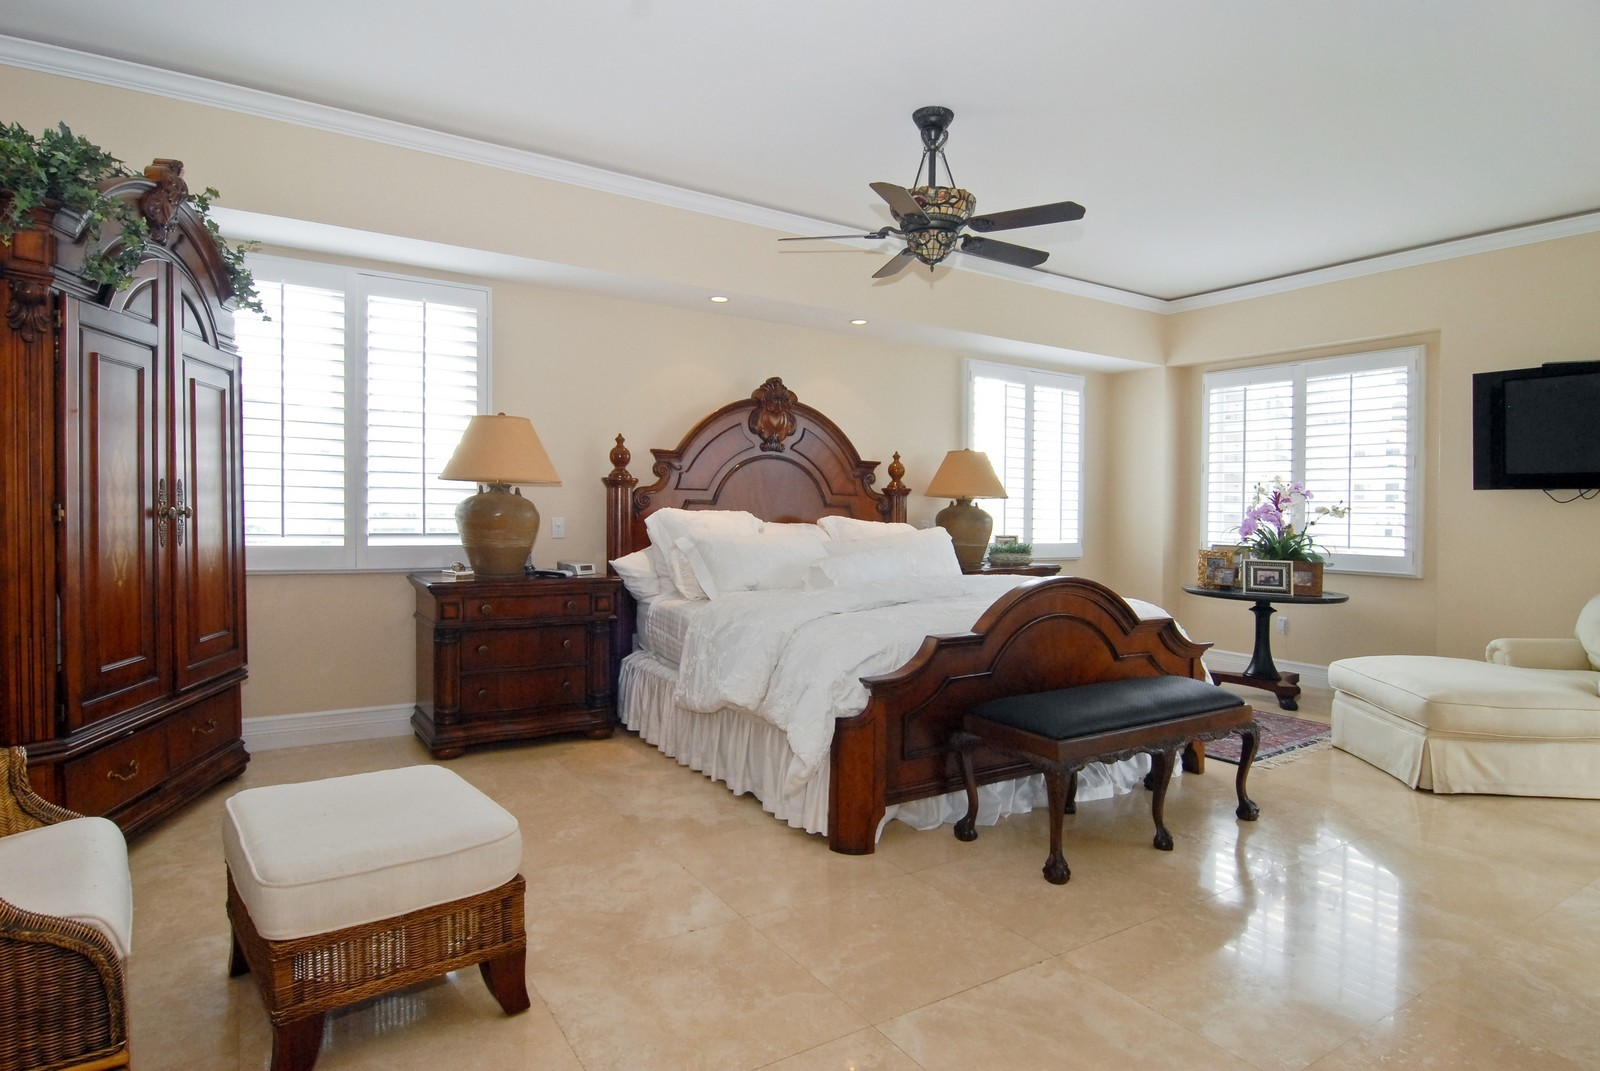 Real Estate Photography - 7251 Fisher Island Dr, Fisher Island, FL, 33109 - Master Bedroom